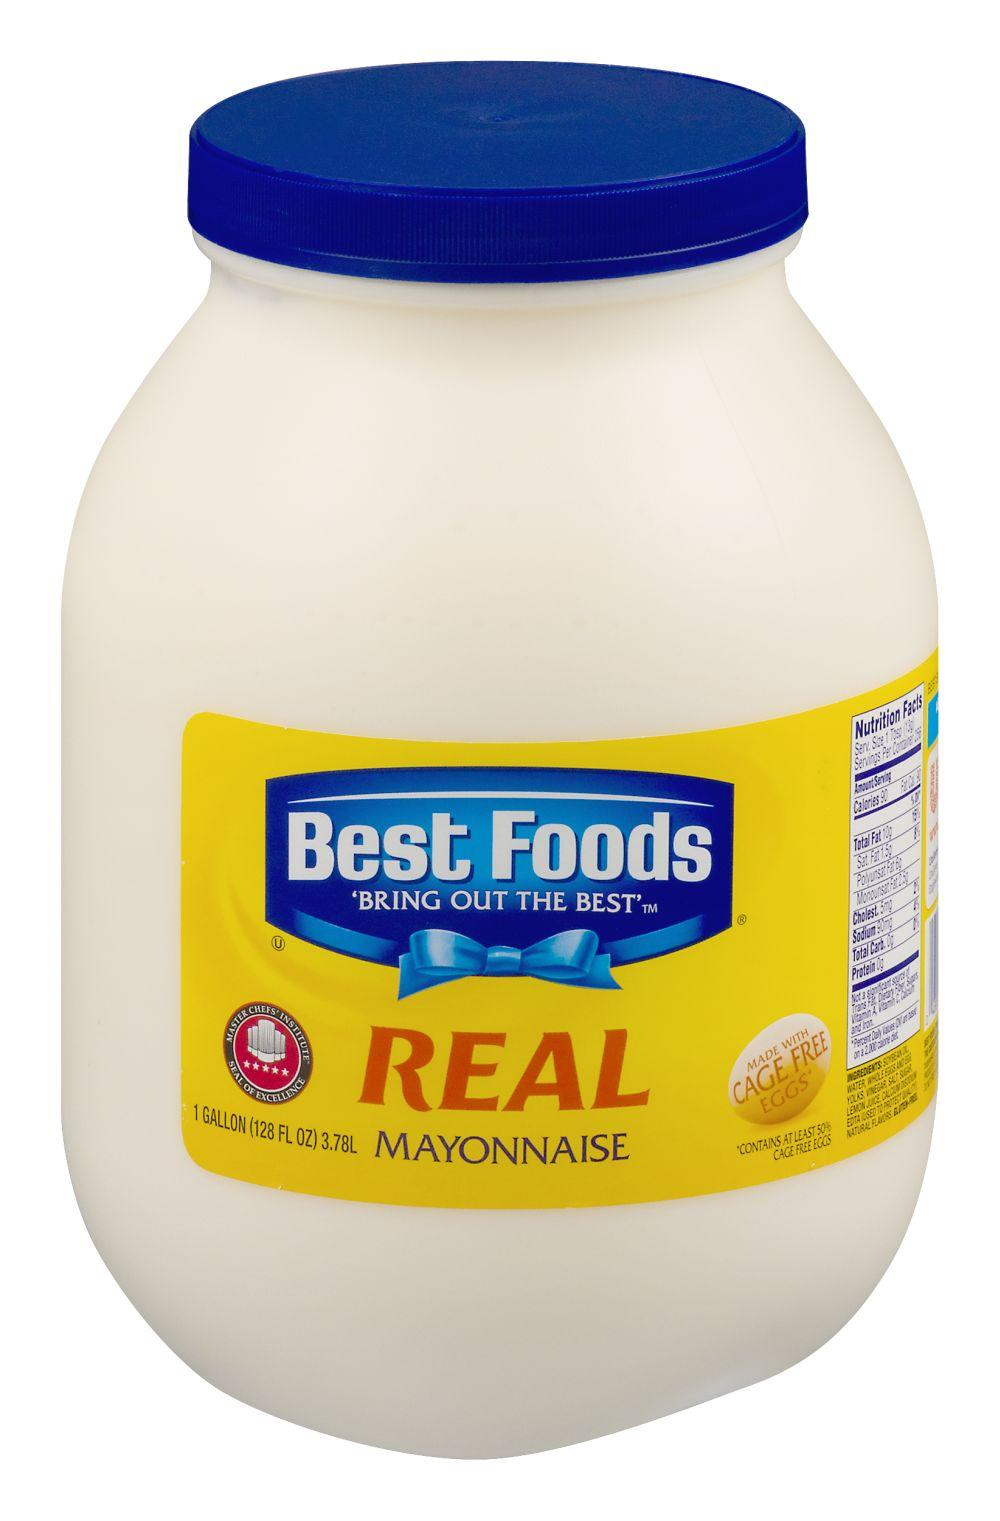 Is Best Foods Real Mayonnaise Gluten Free